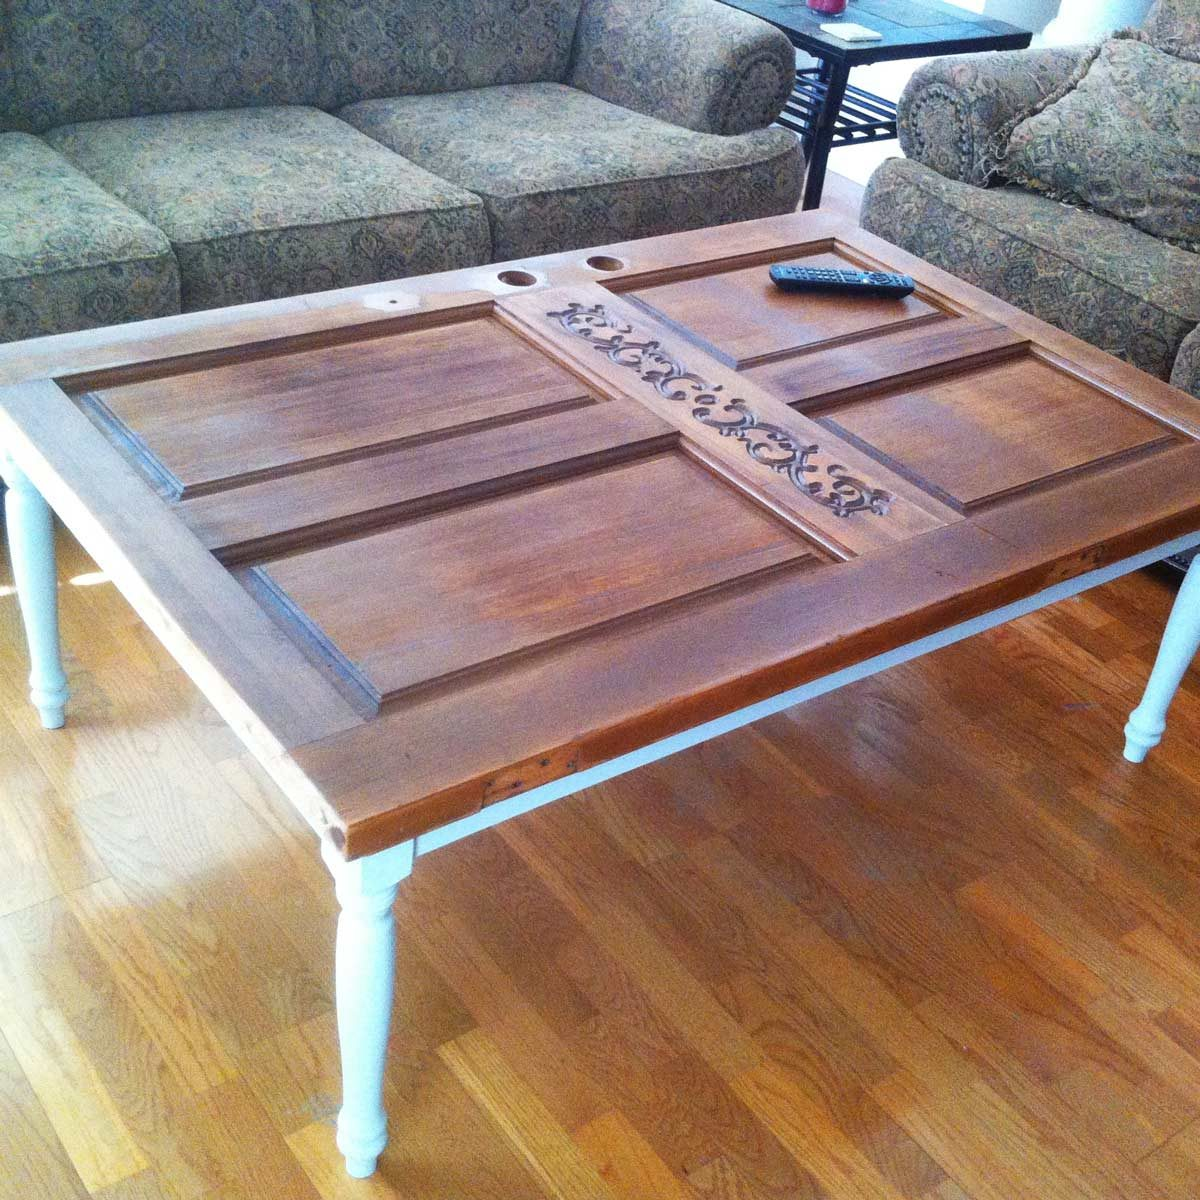 Unique Coffee Table Decor 14 Super Cool Homemade Coffee Table Ideas Unusual Coffee Tables